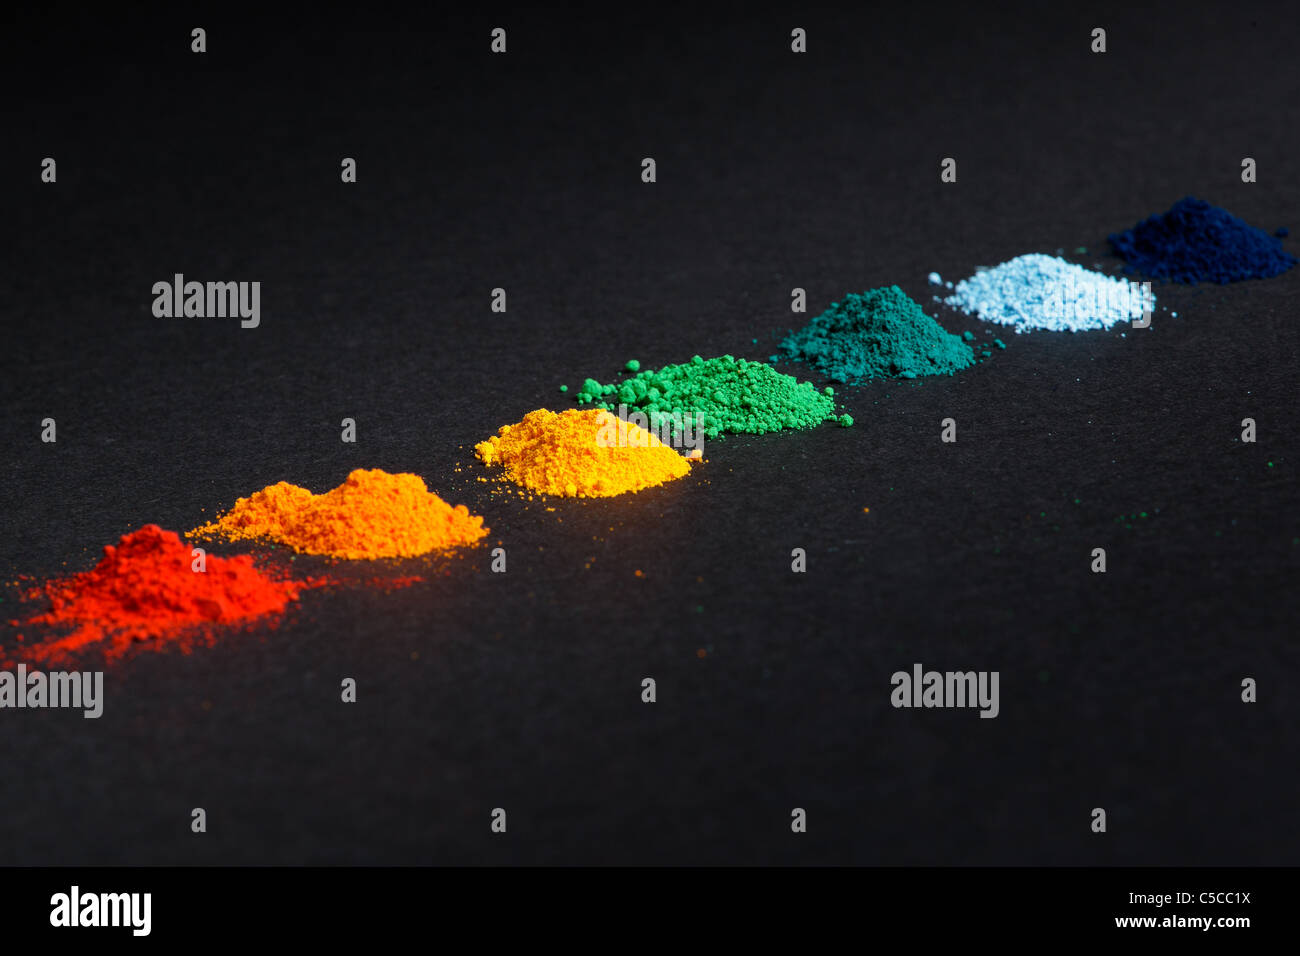 Piles of powdered food colouring in a row - Stock Image